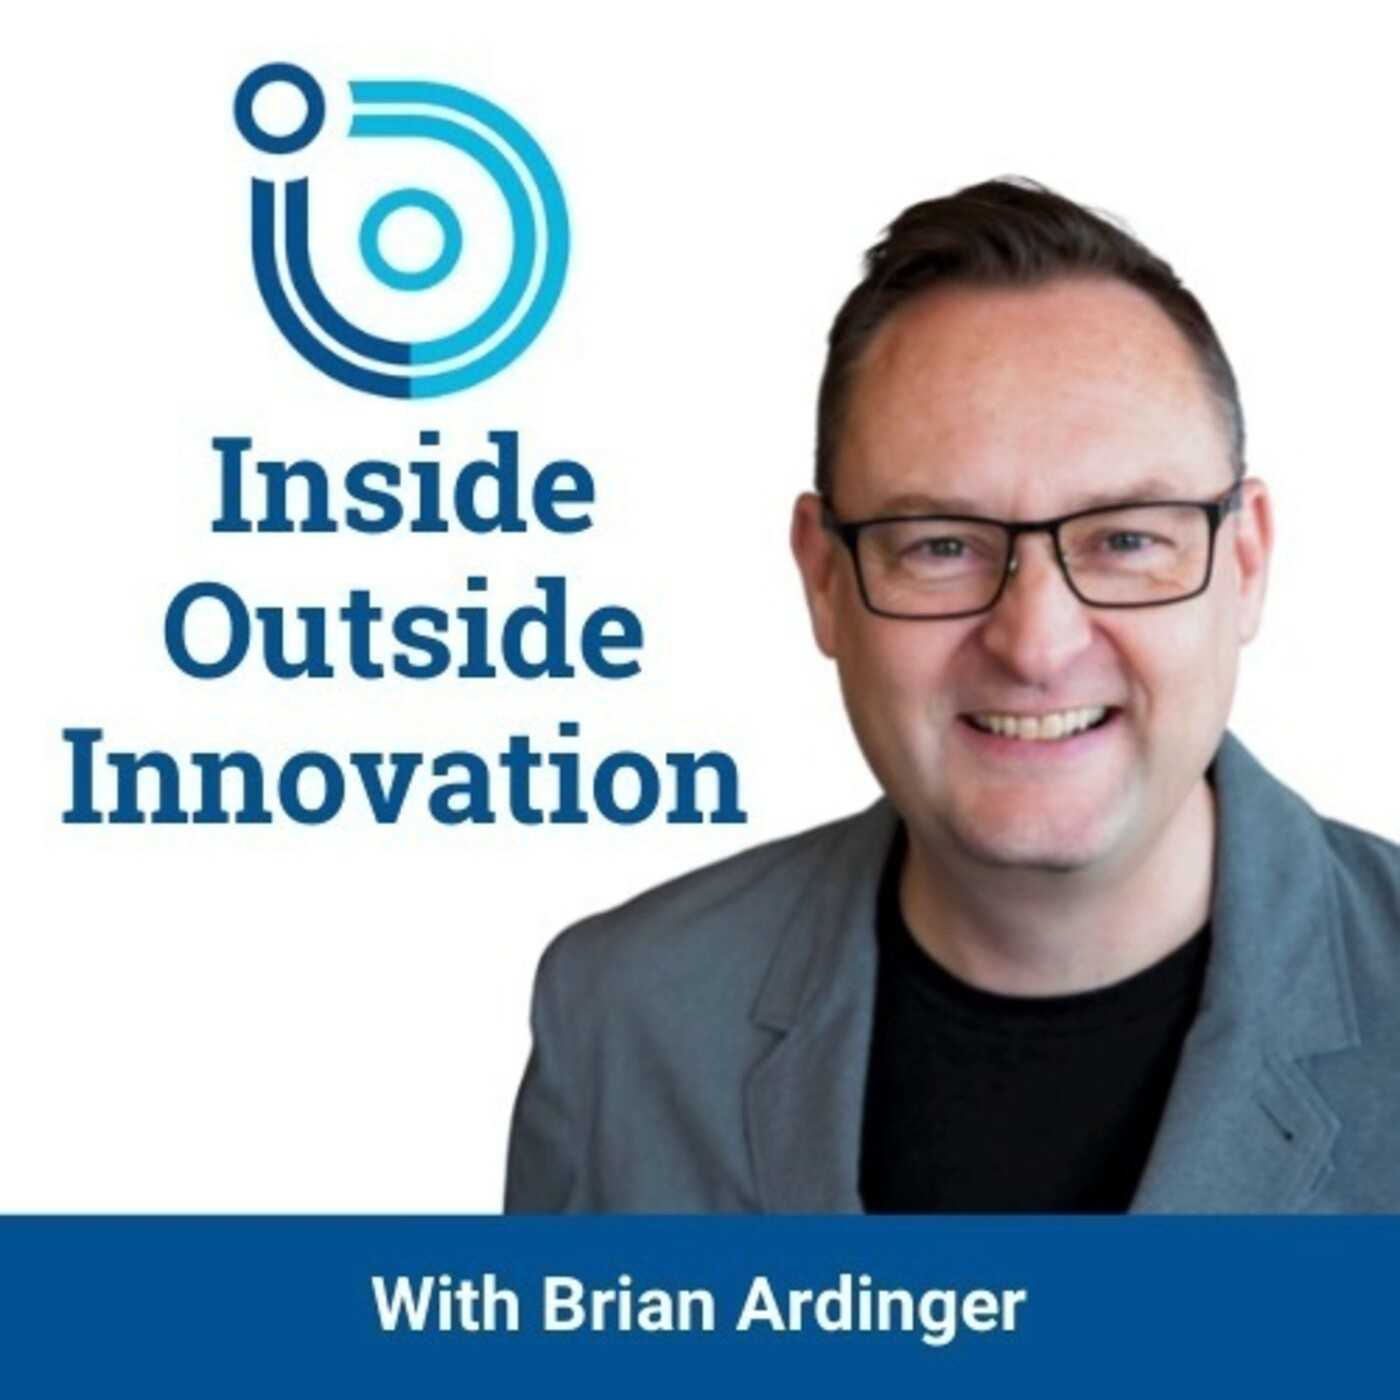 Ep. 187 - Audrey Crane, Author of What CEOs Need to Know About Design and Partner at Design Map